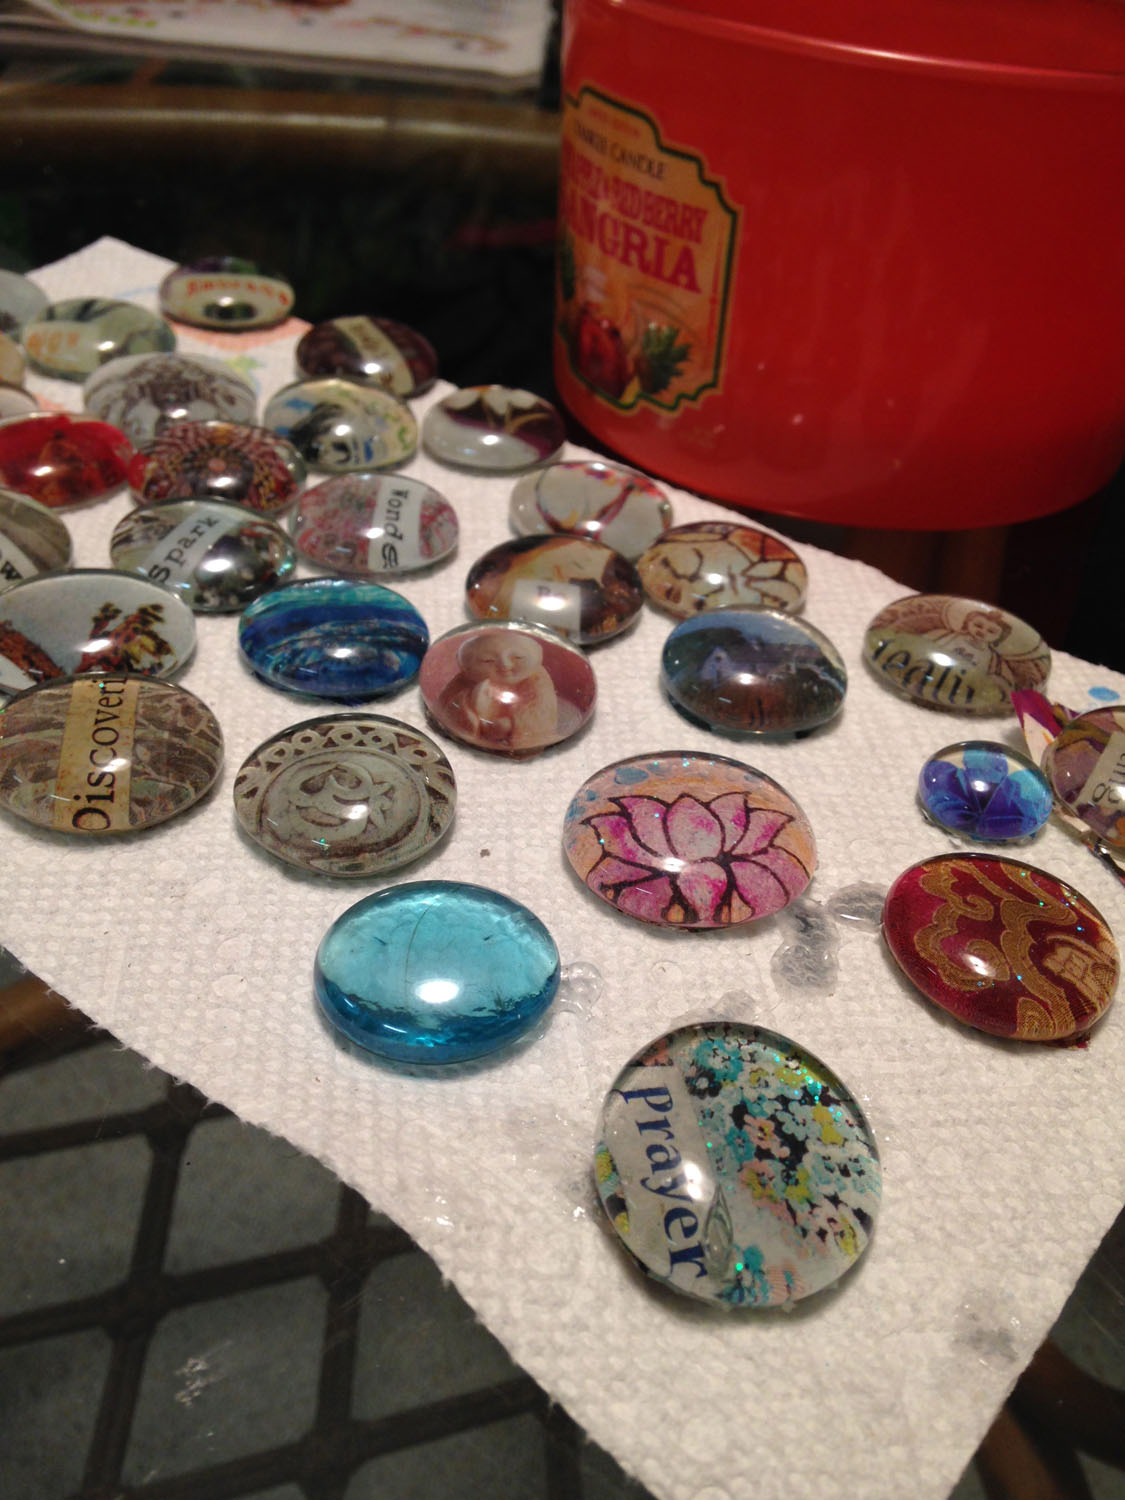 kids-art-parties-classes-and-camps-in-greensboro-nc-with-artist-tracey-j-marshallIMG_0119.jpg